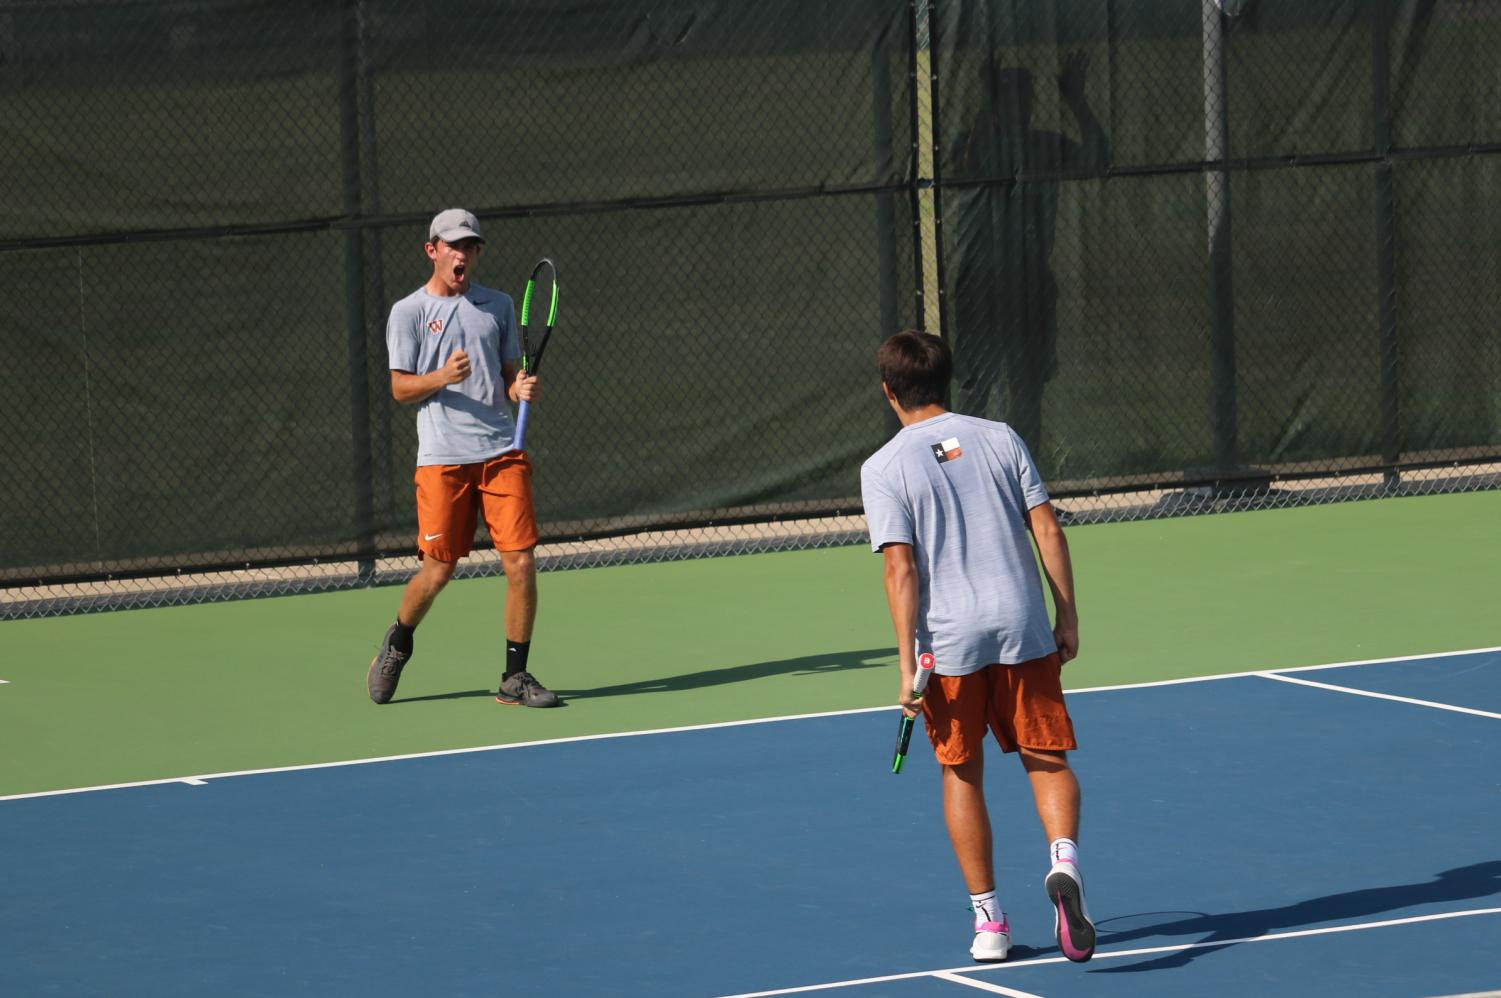 Celebrating+a+hard+earned+point%2C+Daniel+Antov+%2721+and+Marko+Mesarovic+%2723+look+to+each+other+to+express+their+excitement.+The+duo+would+go+on+to+win+their+match++by+a+score+of+6-4%2C+7-6%2C+and+a+tie-breaker+of+10-4.+